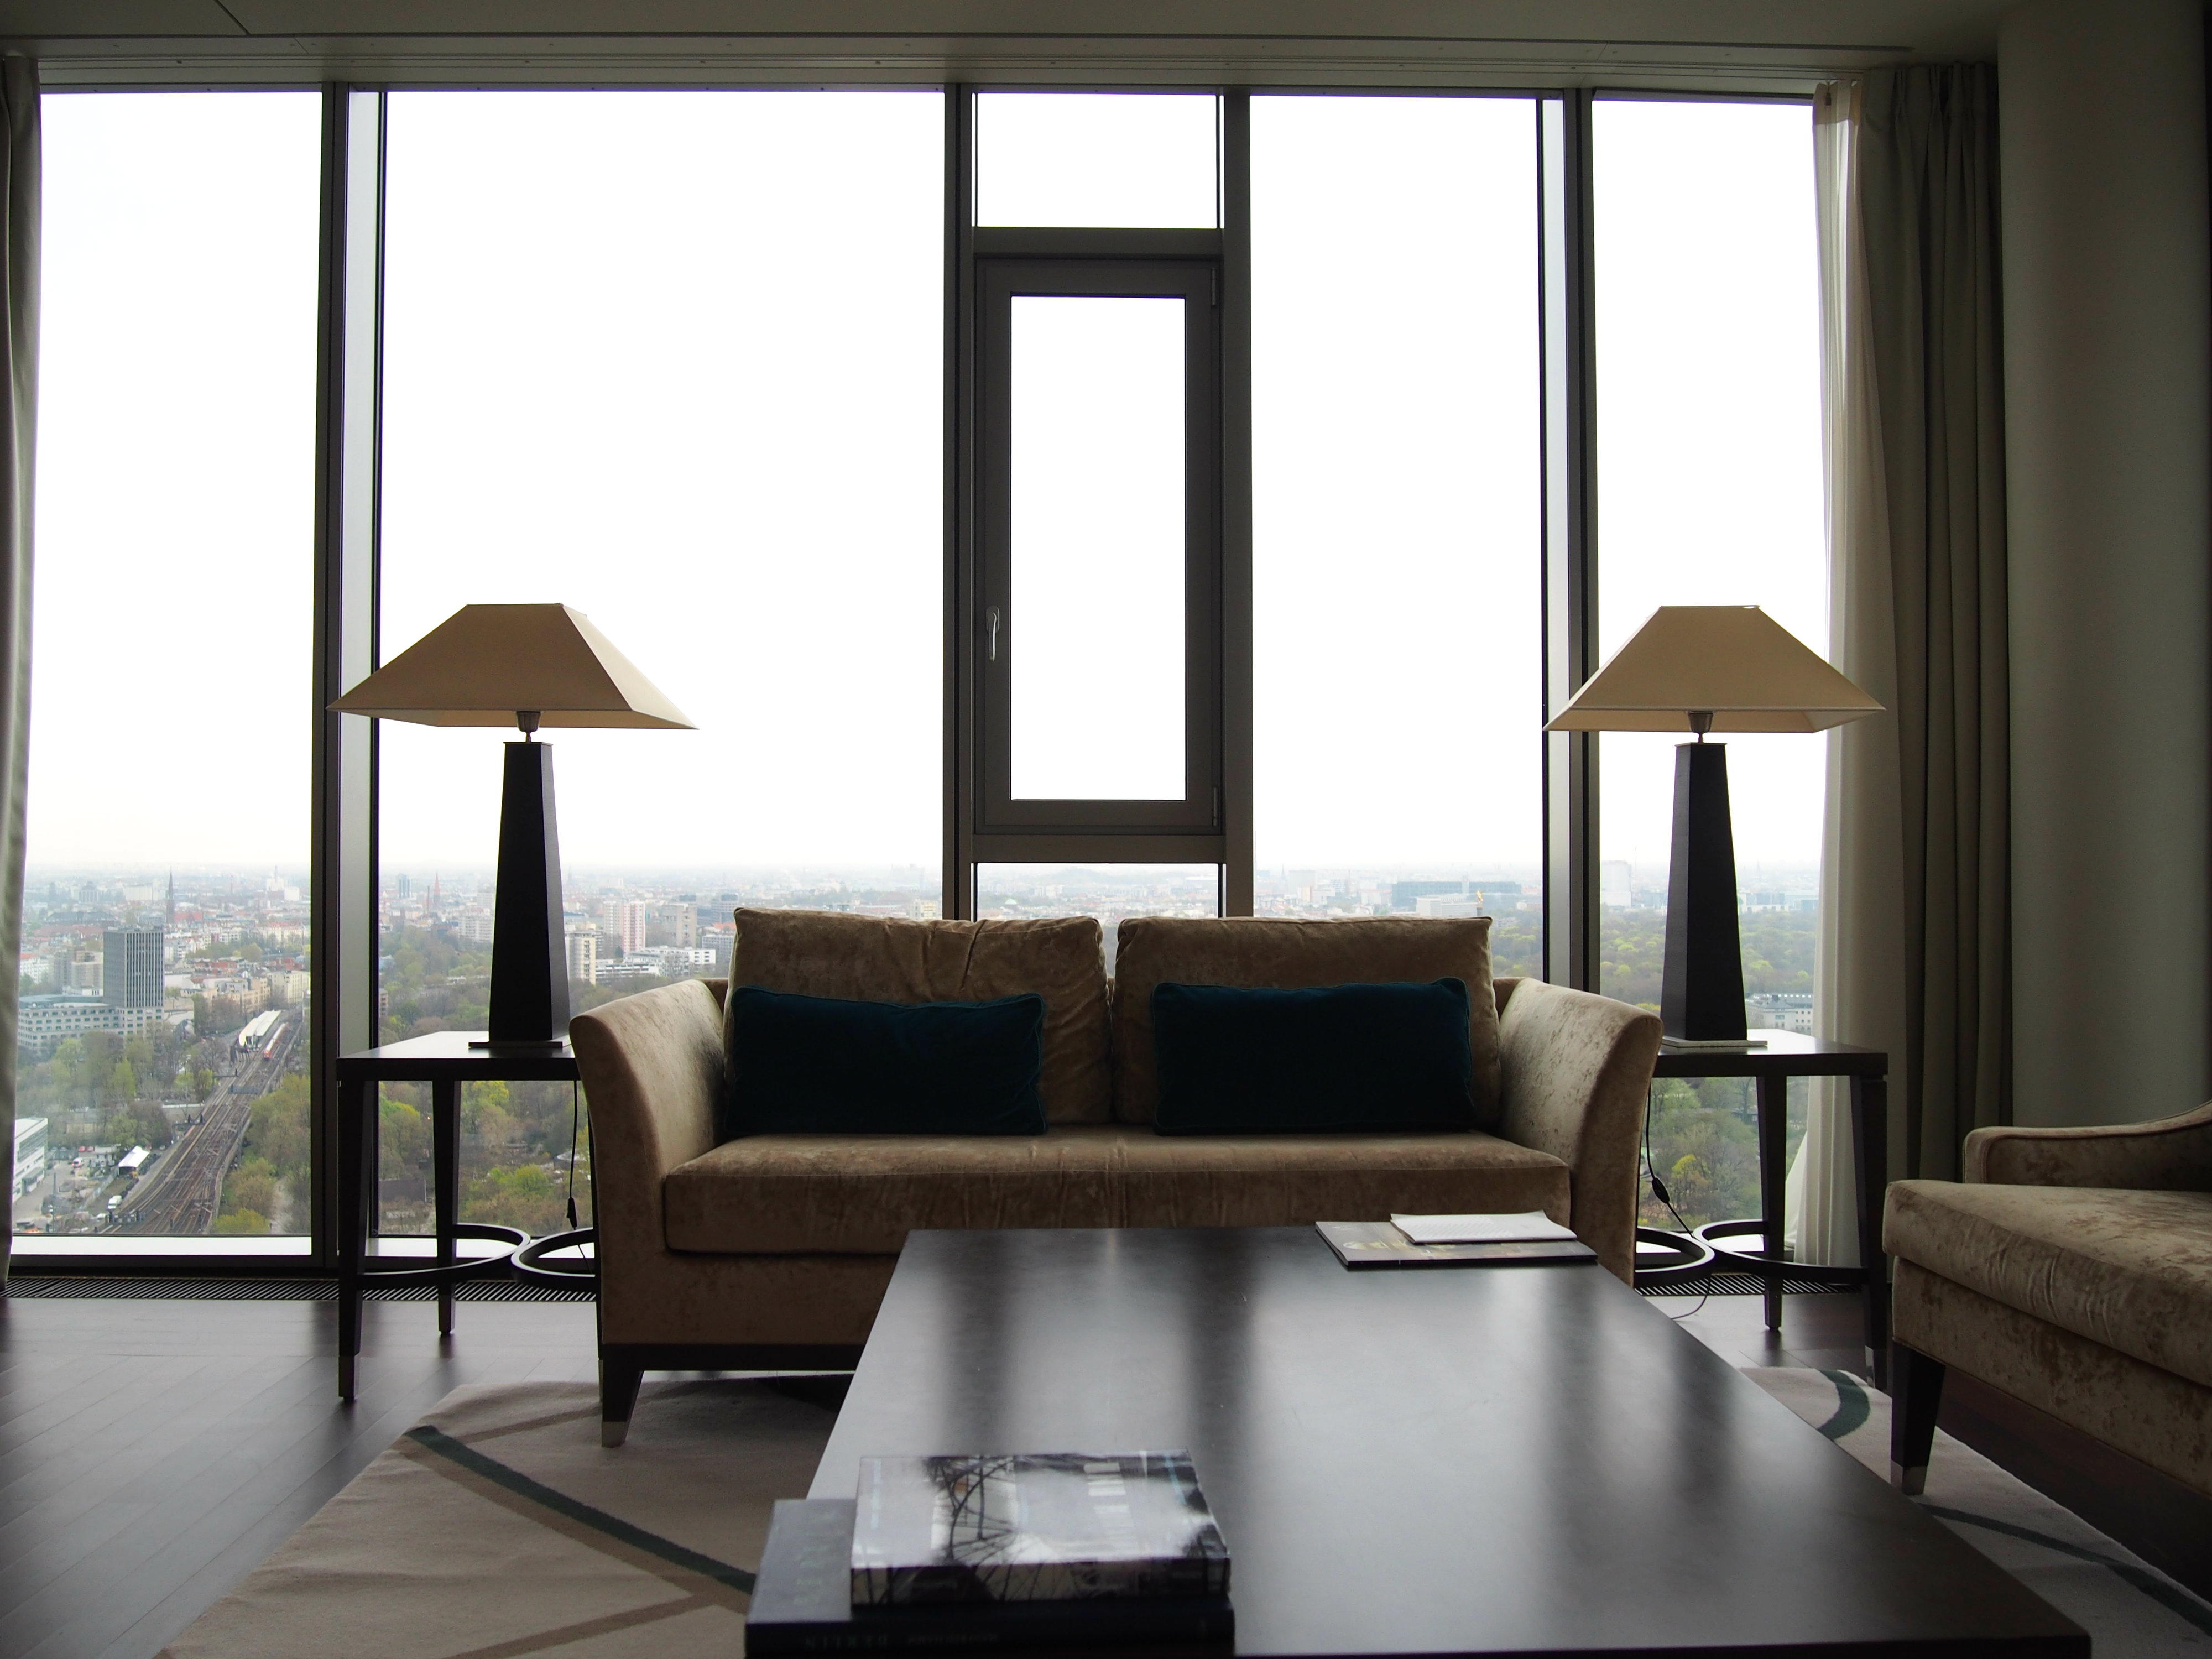 Waldorf Astoria Berlin Tower Suite livingroom 4